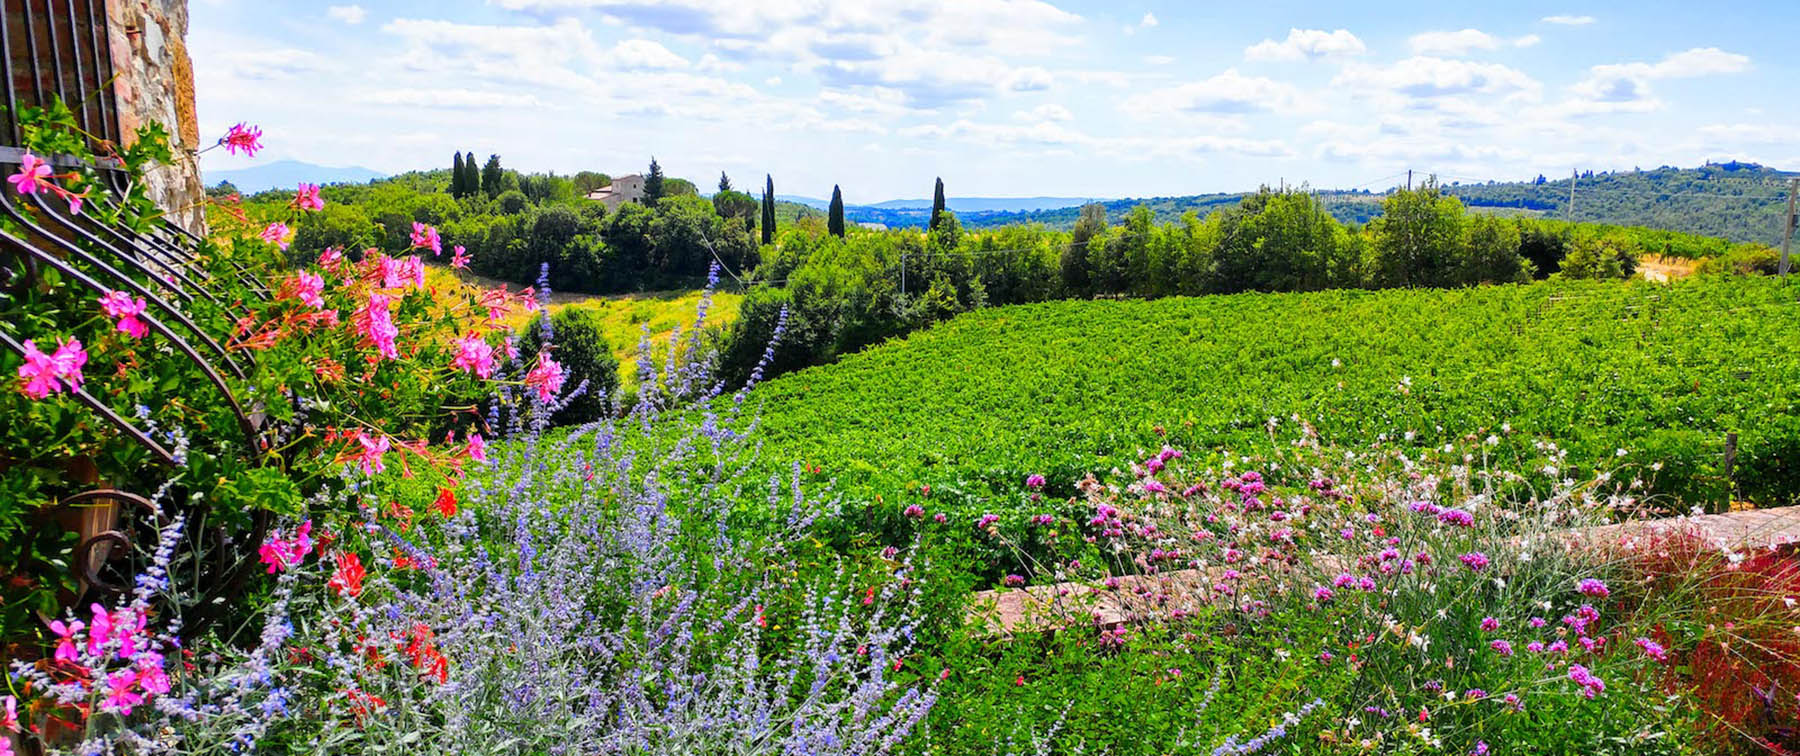 View on Chianti vineyards